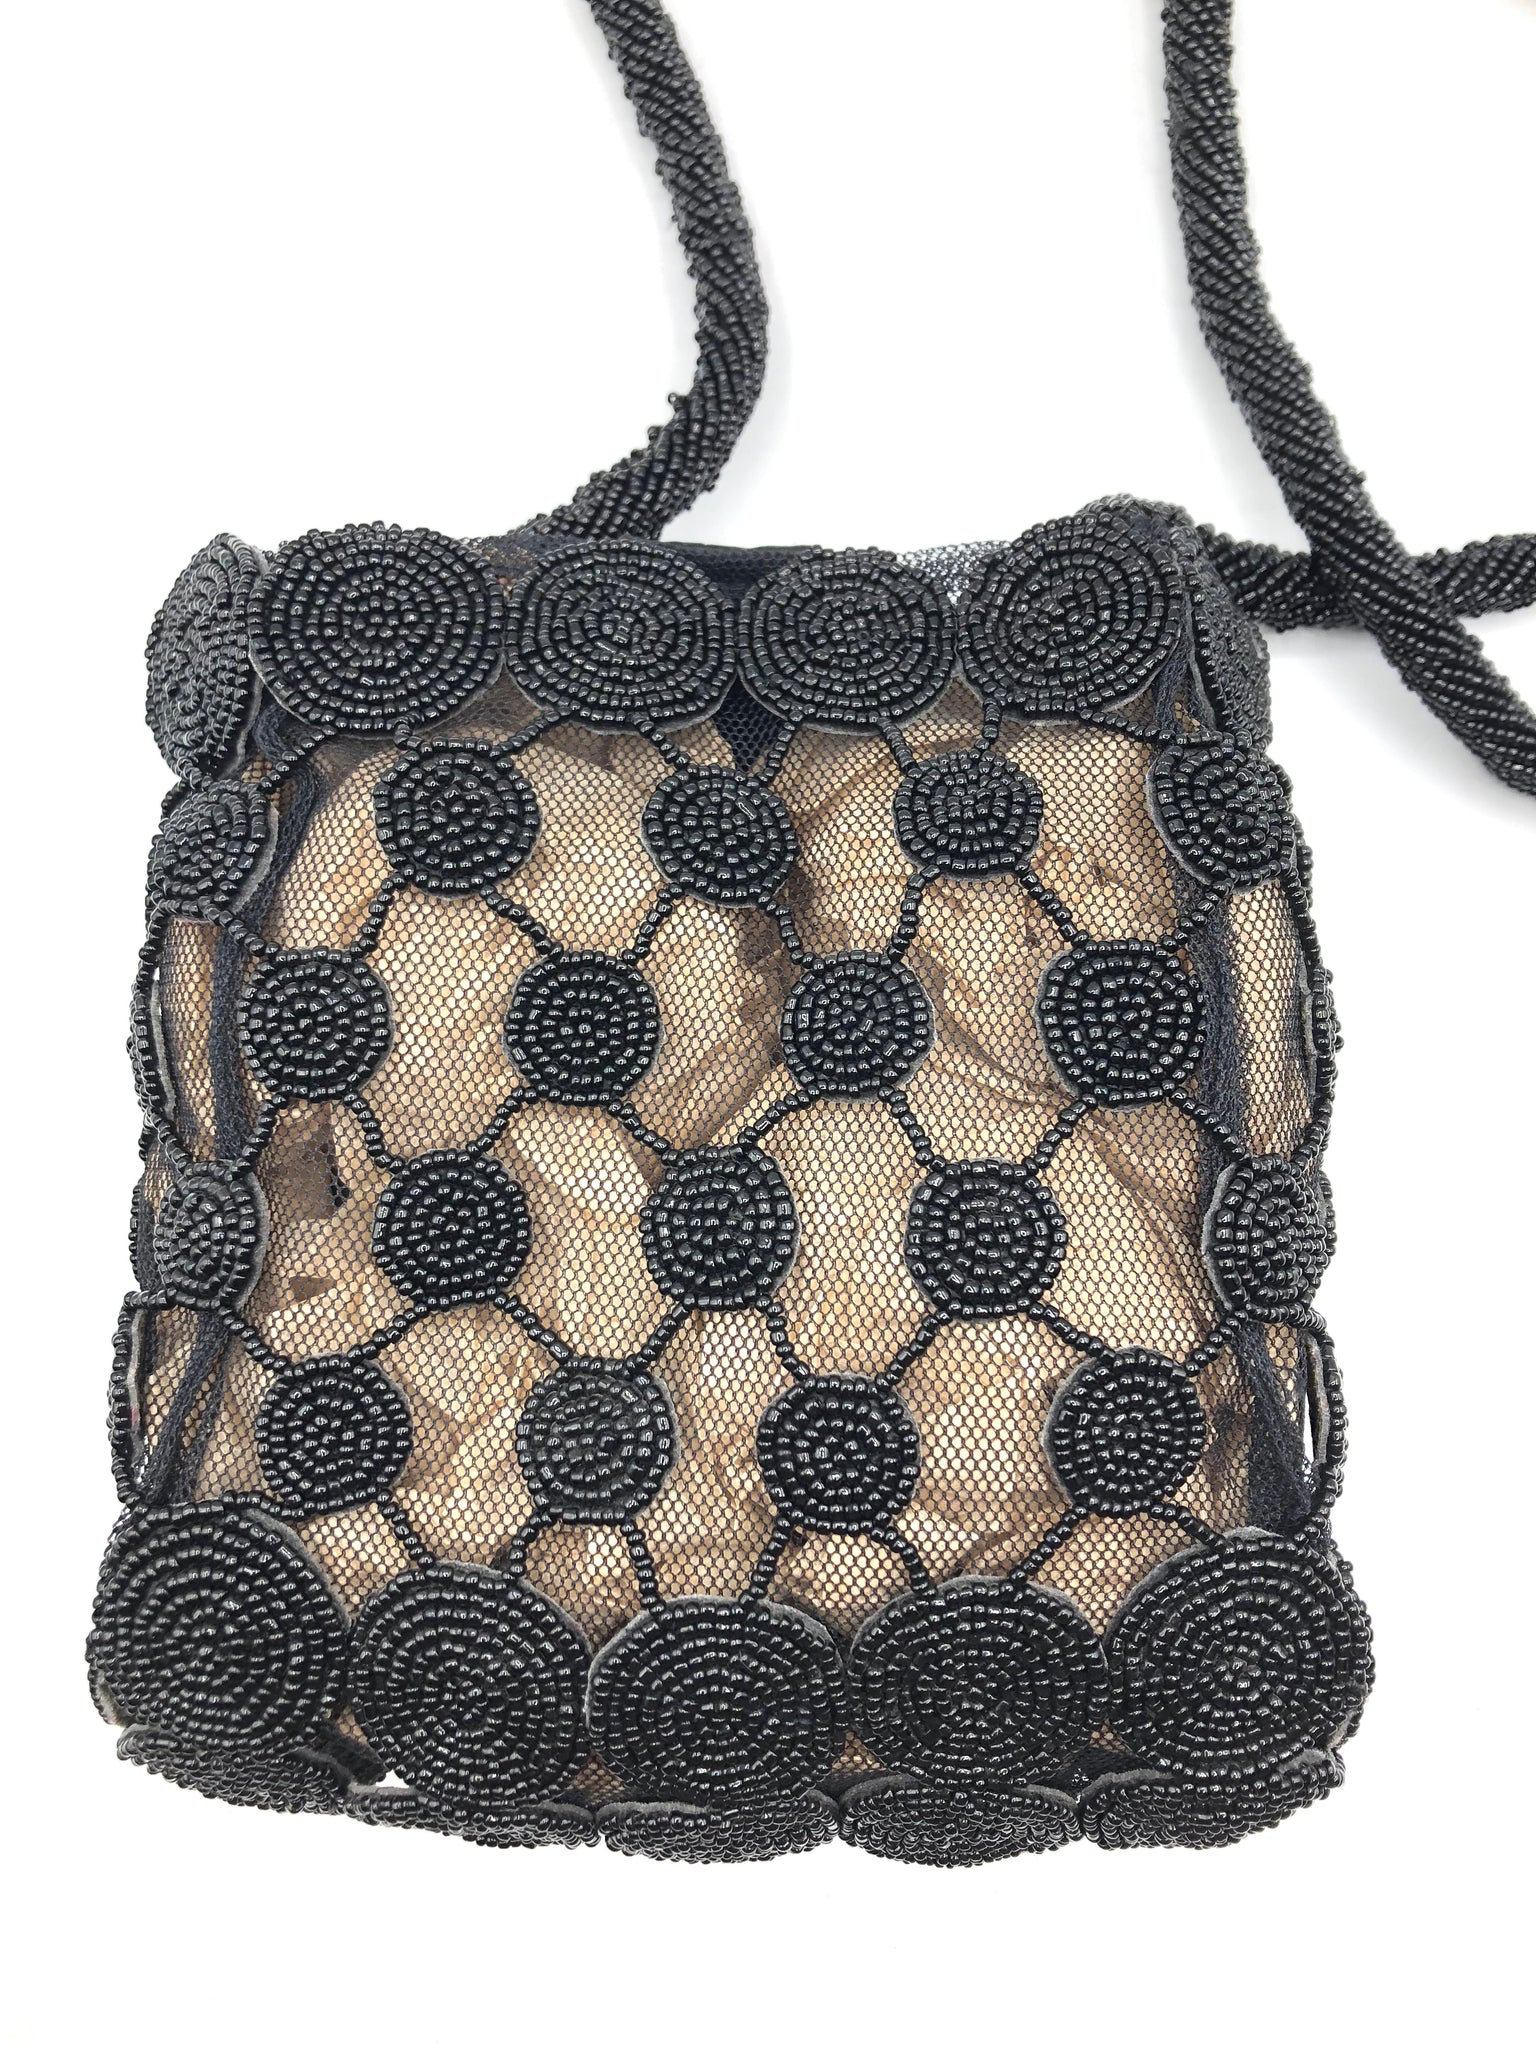 Krizia 90s  Black Beaded Cross Body Pouch 2 of 4